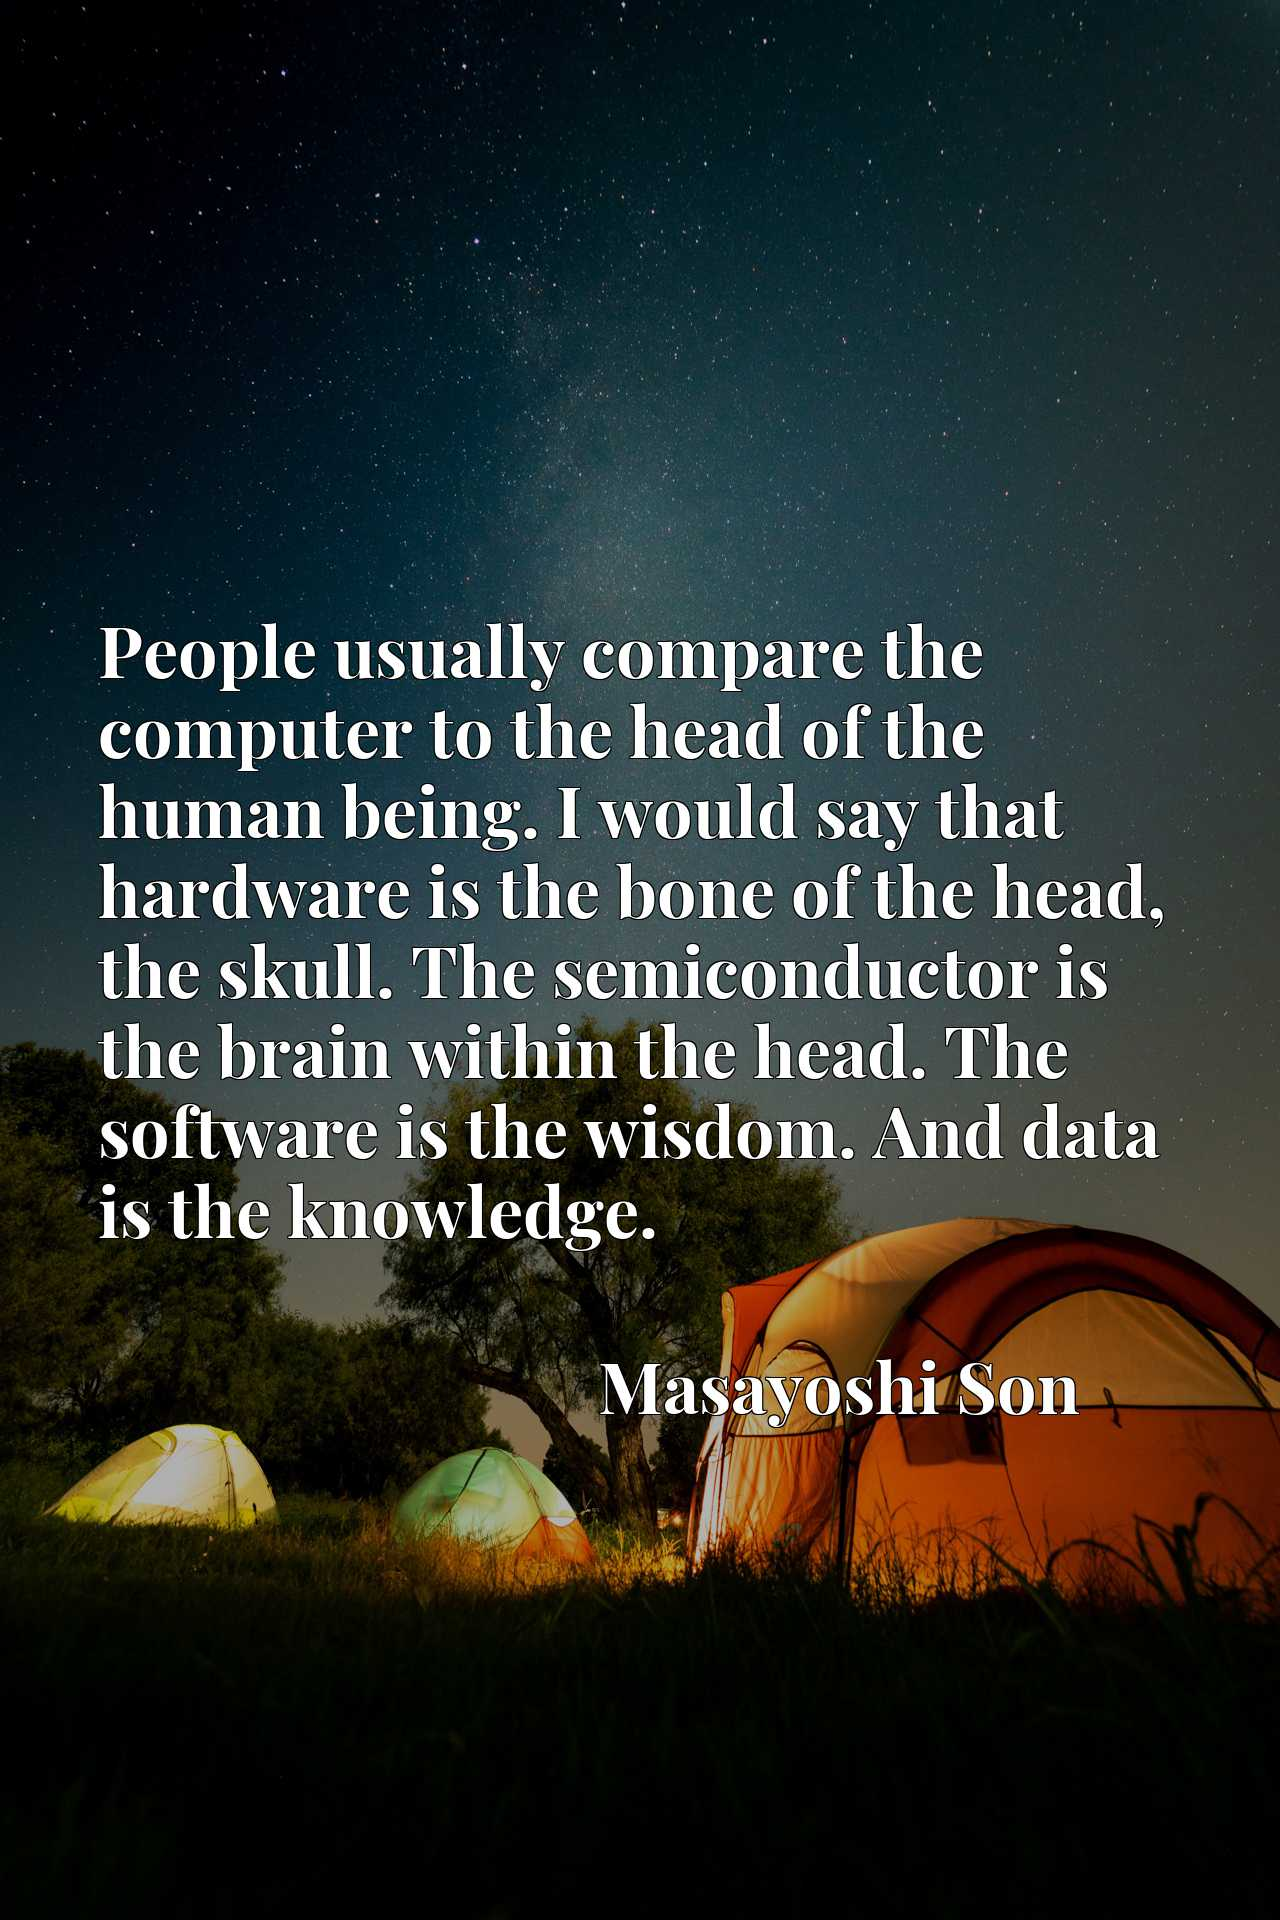 People usually compare the computer to the head of the human being. I would say that hardware is the bone of the head, the skull. The semiconductor is the brain within the head. The software is the wisdom. And data is the knowledge.